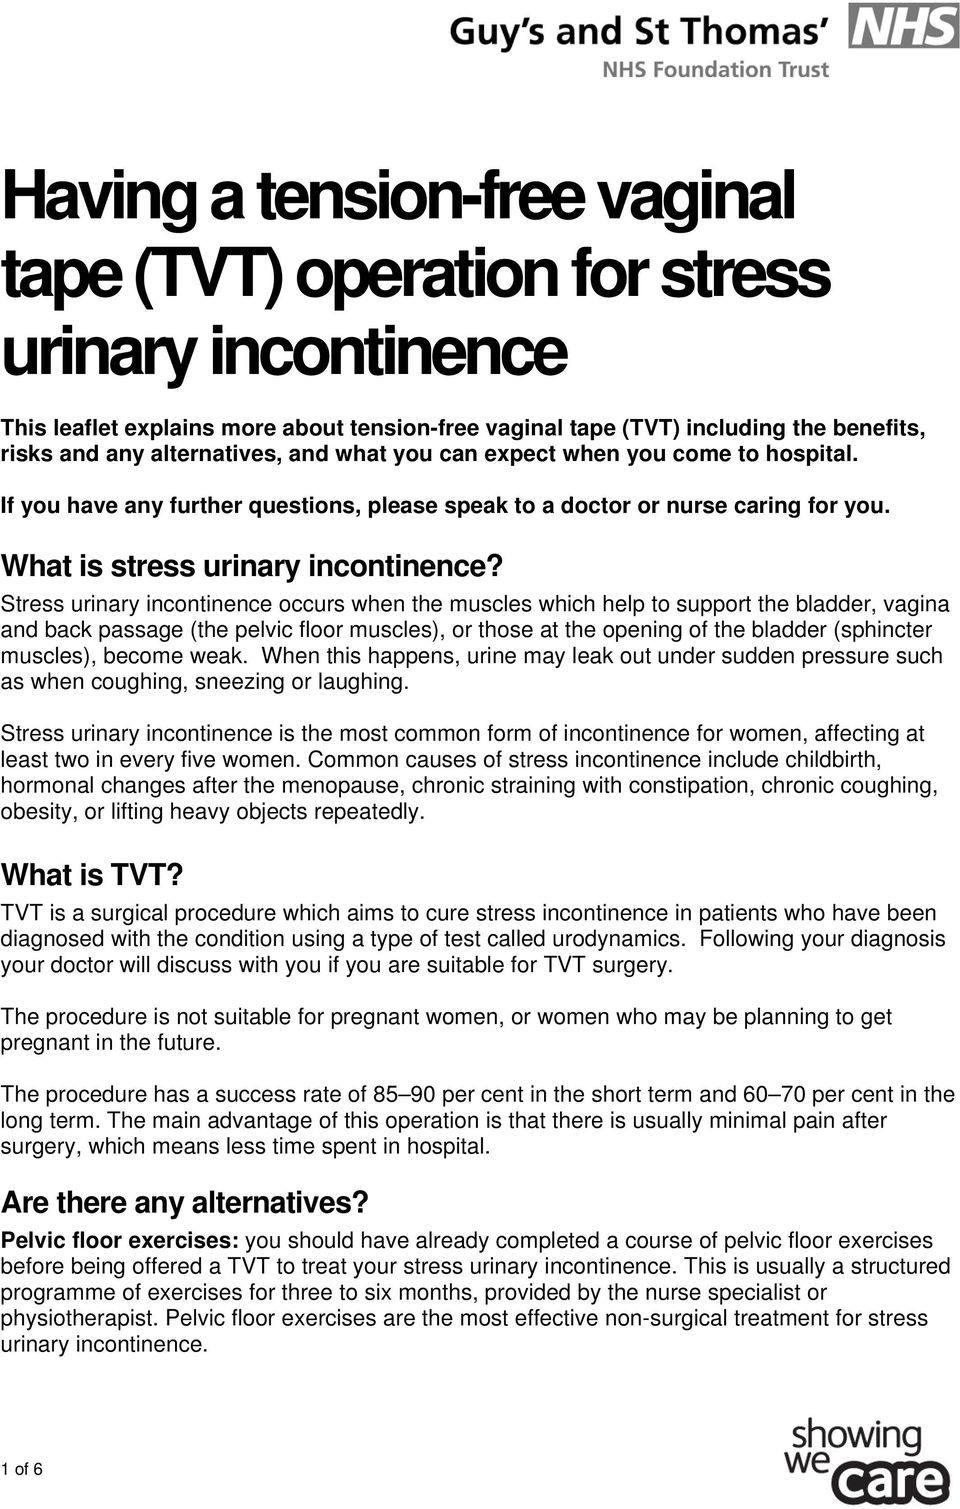 Stress urinary incontinence occurs when the muscles which help to support the bladder, vagina and back passage (the pelvic floor muscles), or those at the opening of the bladder (sphincter muscles),